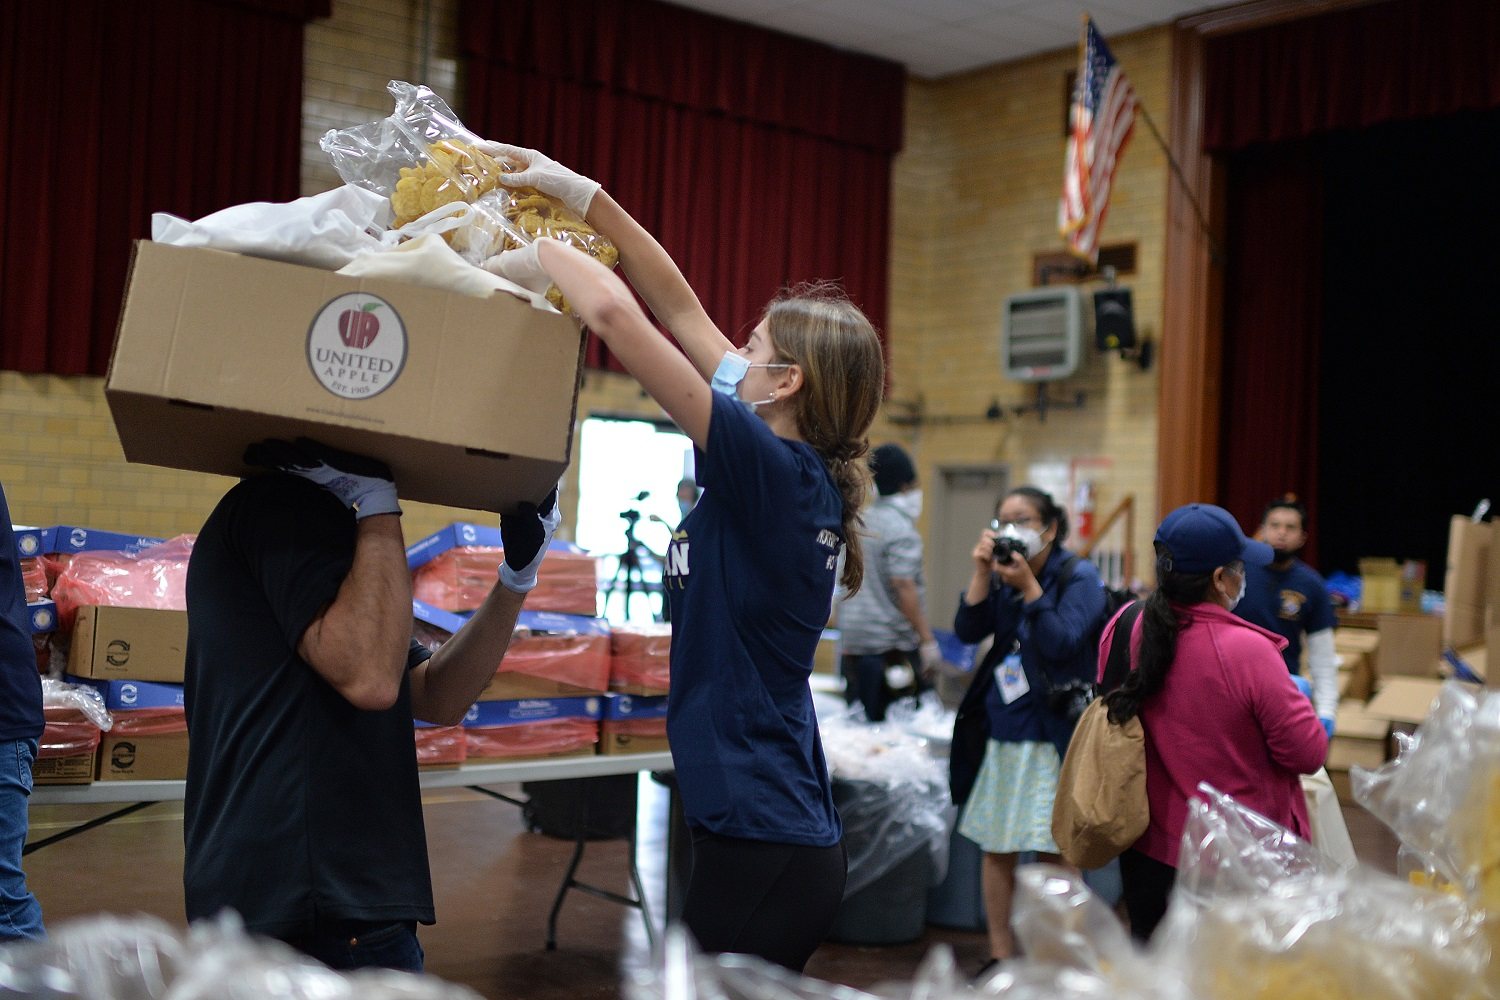 Wearing protective masks and gloves in the time of COVID-19, volunteers help prepare and distribute donated food to people seeking assistance at St. Finbar Catholic Church, in the Brooklyn borough of New York, NY, May 29, 2020. With enough food packages for 1500 individuals, Catholic Charities Brooklyn and Queens distributed food to those suffering from food insecurities caused by the impact of the Coronavirus pandemic and Its effect on the economy. (Anthony Behar/Sipa USA)No Use UK. No Use Germany.